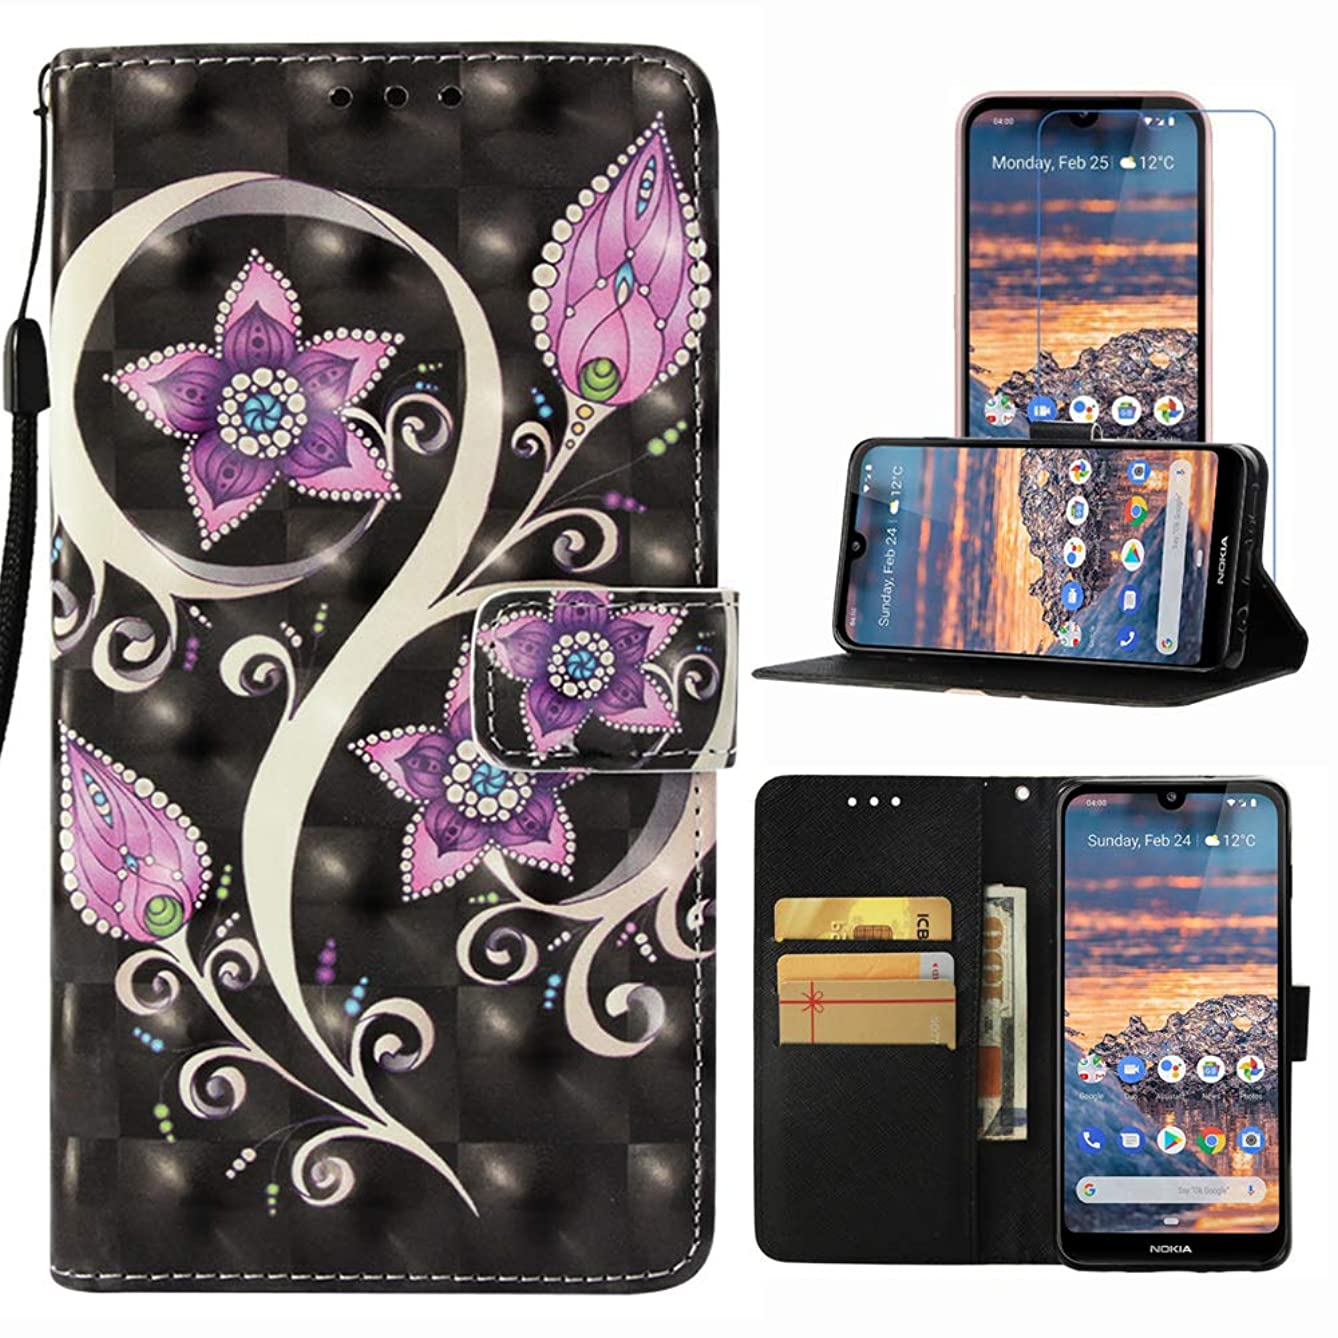 Case for Nokia 4.2, Firstcover Colorful Premium PU Leather Wallet Phone Case Cover for Nokia 4.2 with Screen Protector